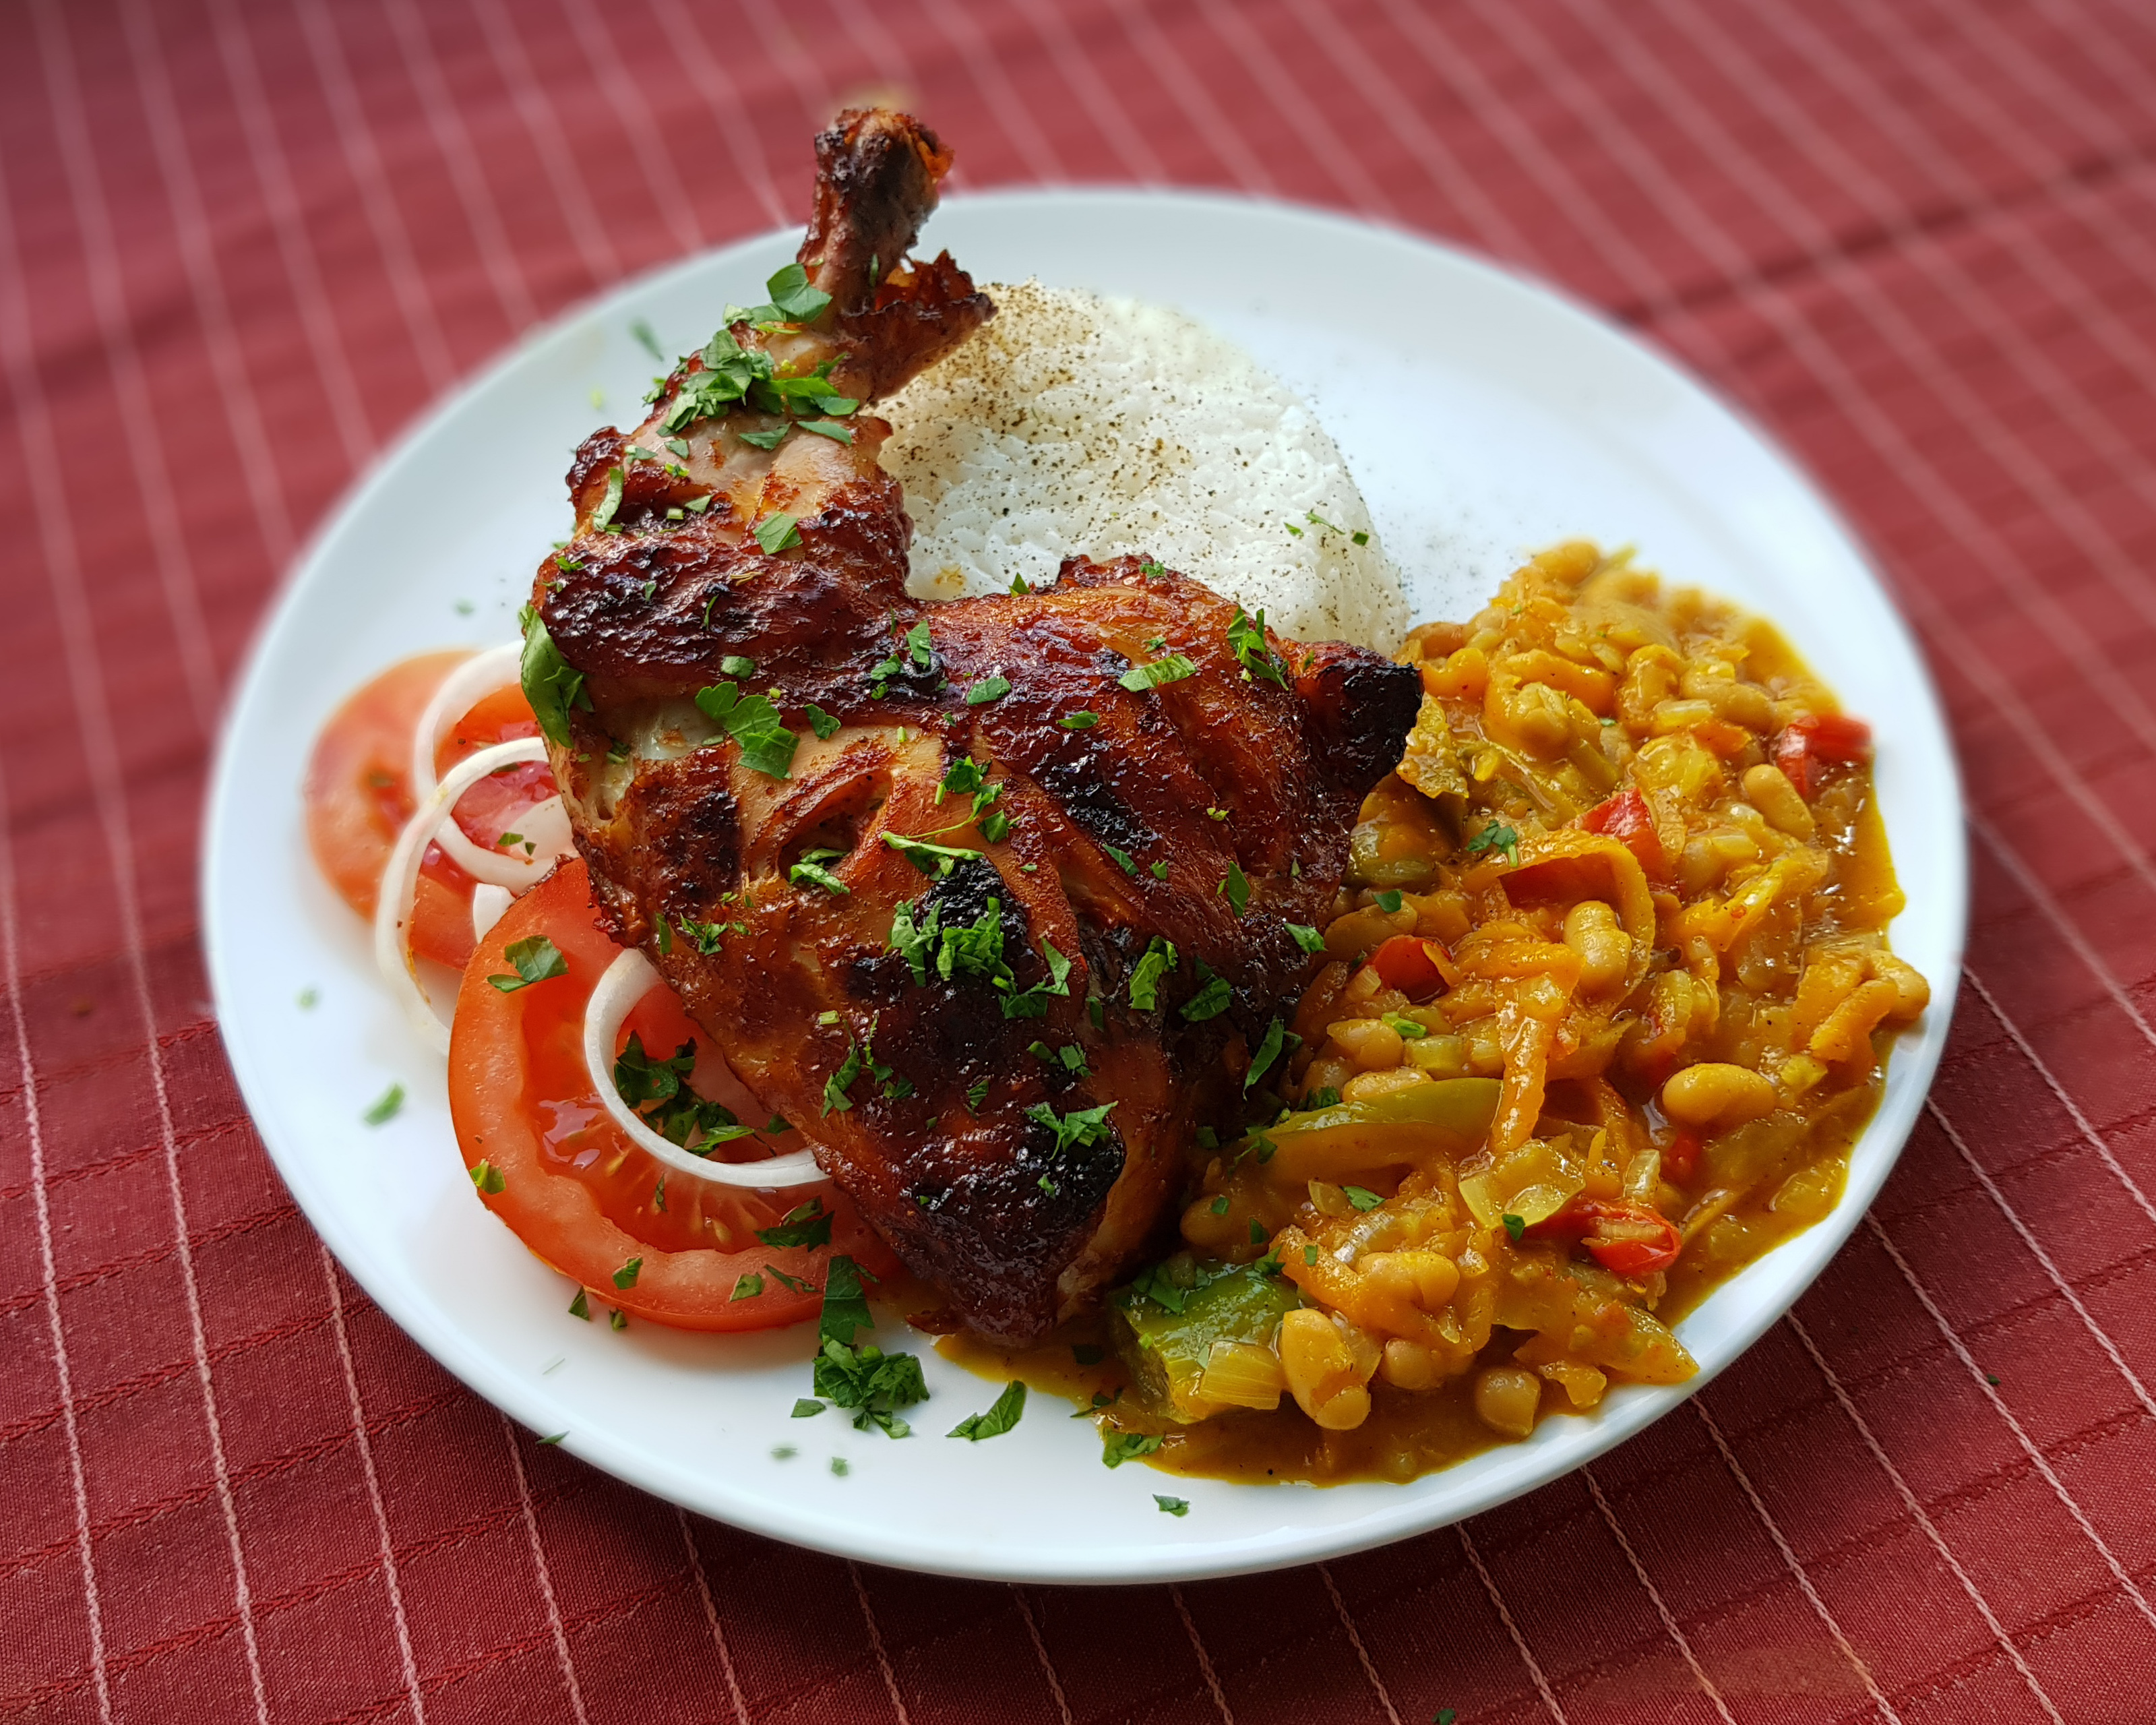 South African Food - Peri-Peri Chicken, Chakalaka and Rice